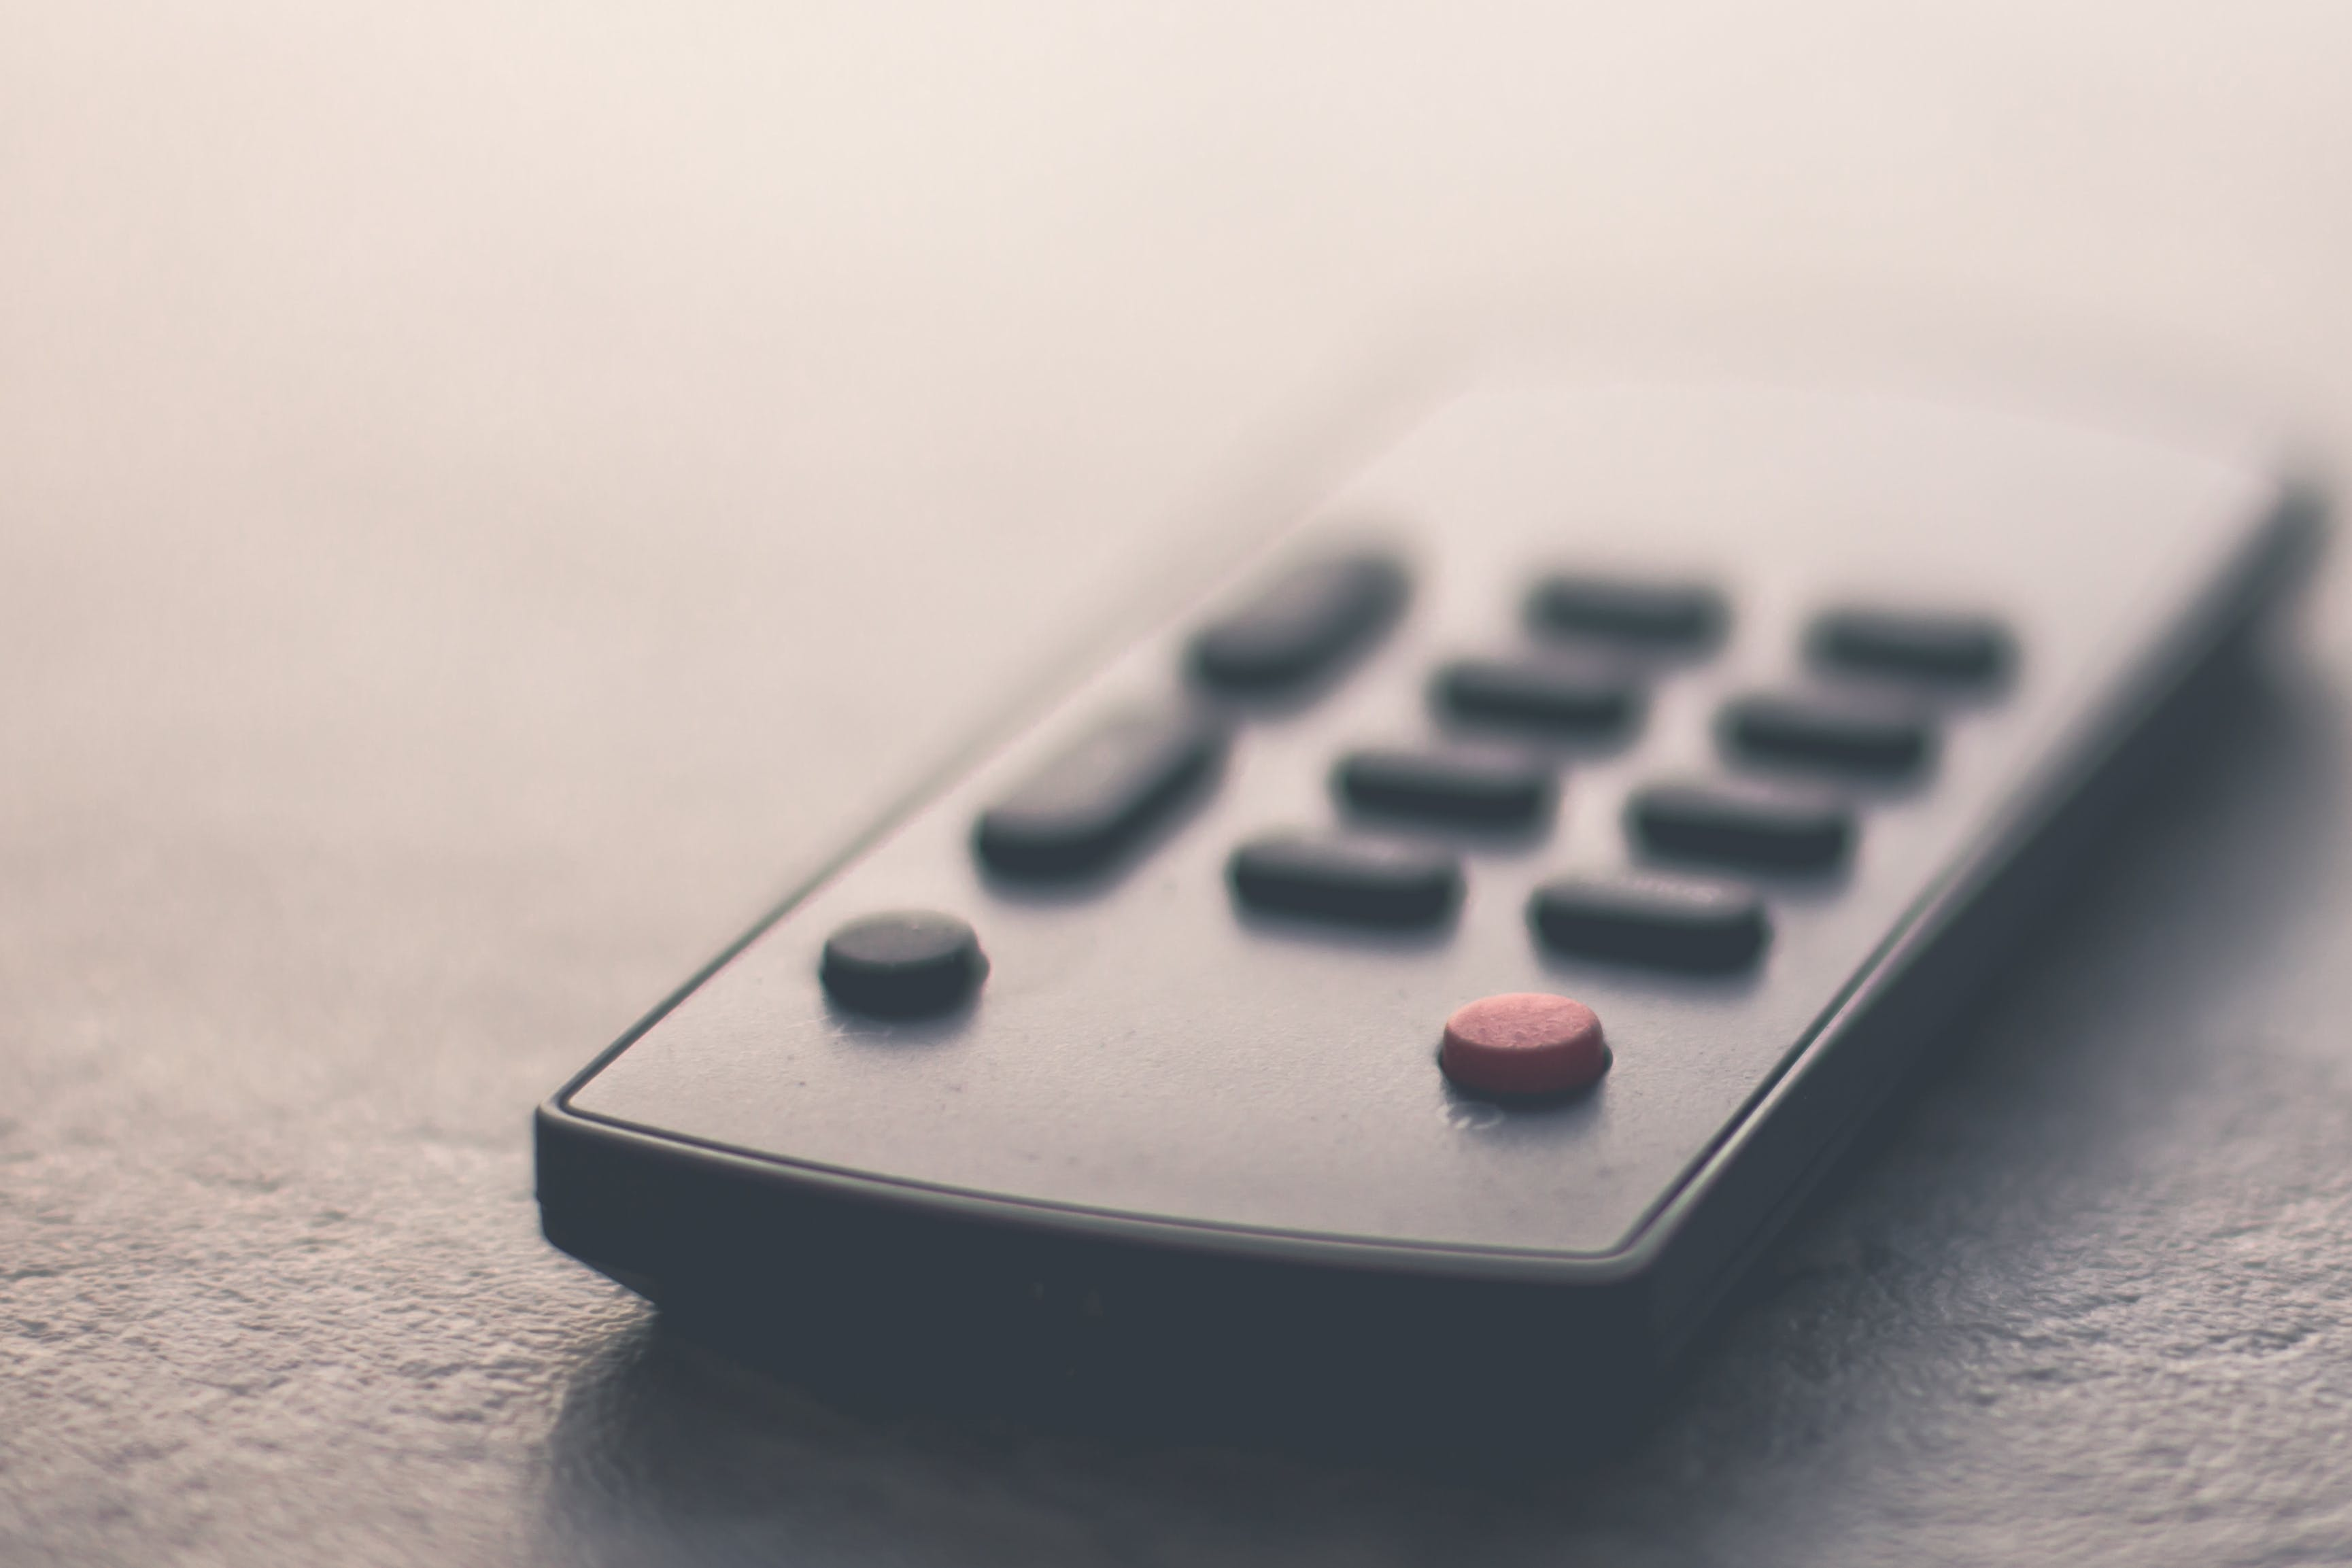 Free stock photo of technology, remote, buttons, tech